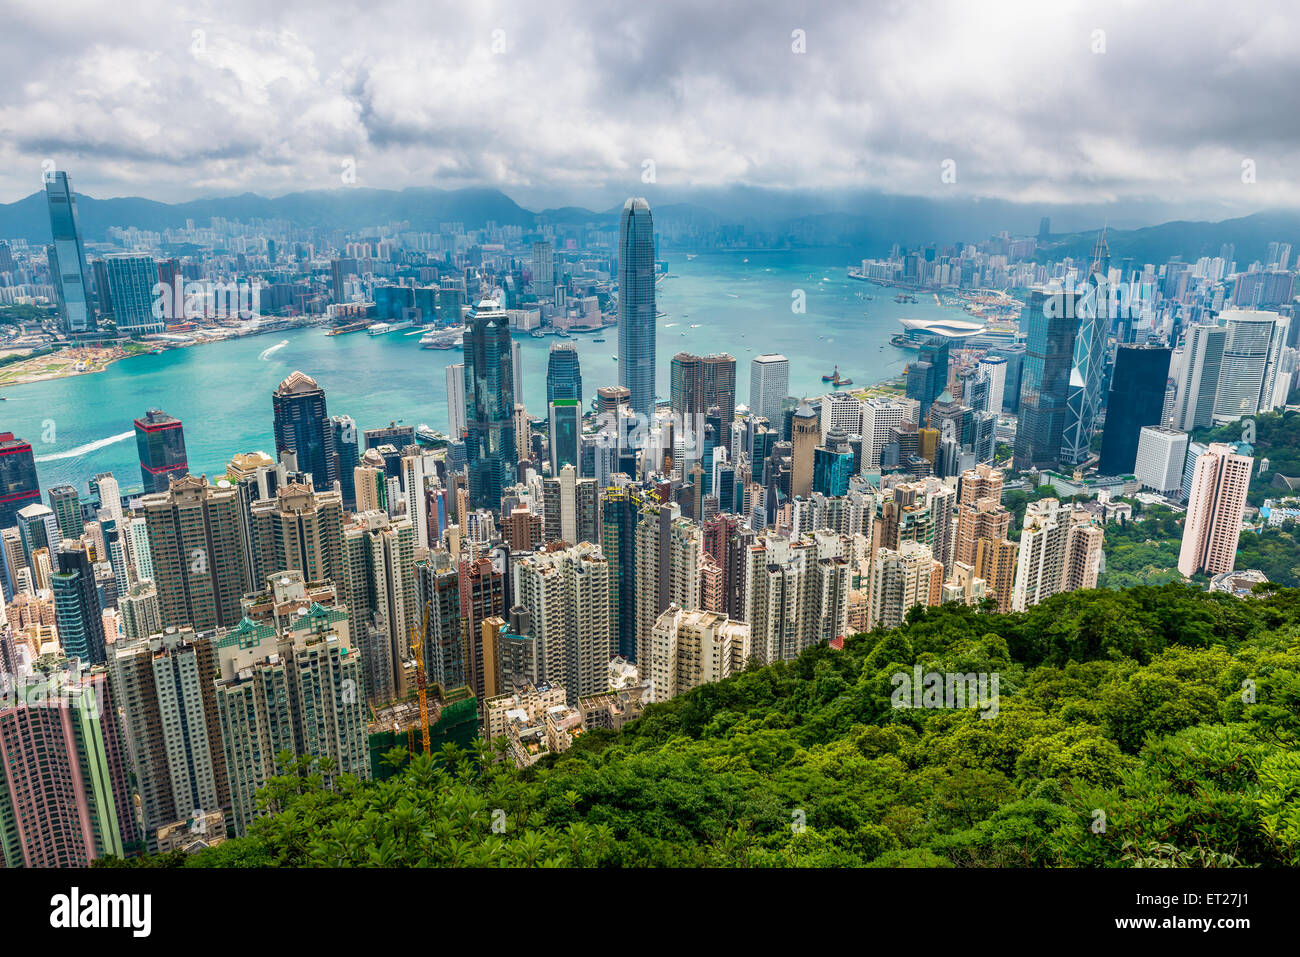 The view of Hong Kong from Victoria Peak. Stock Photo